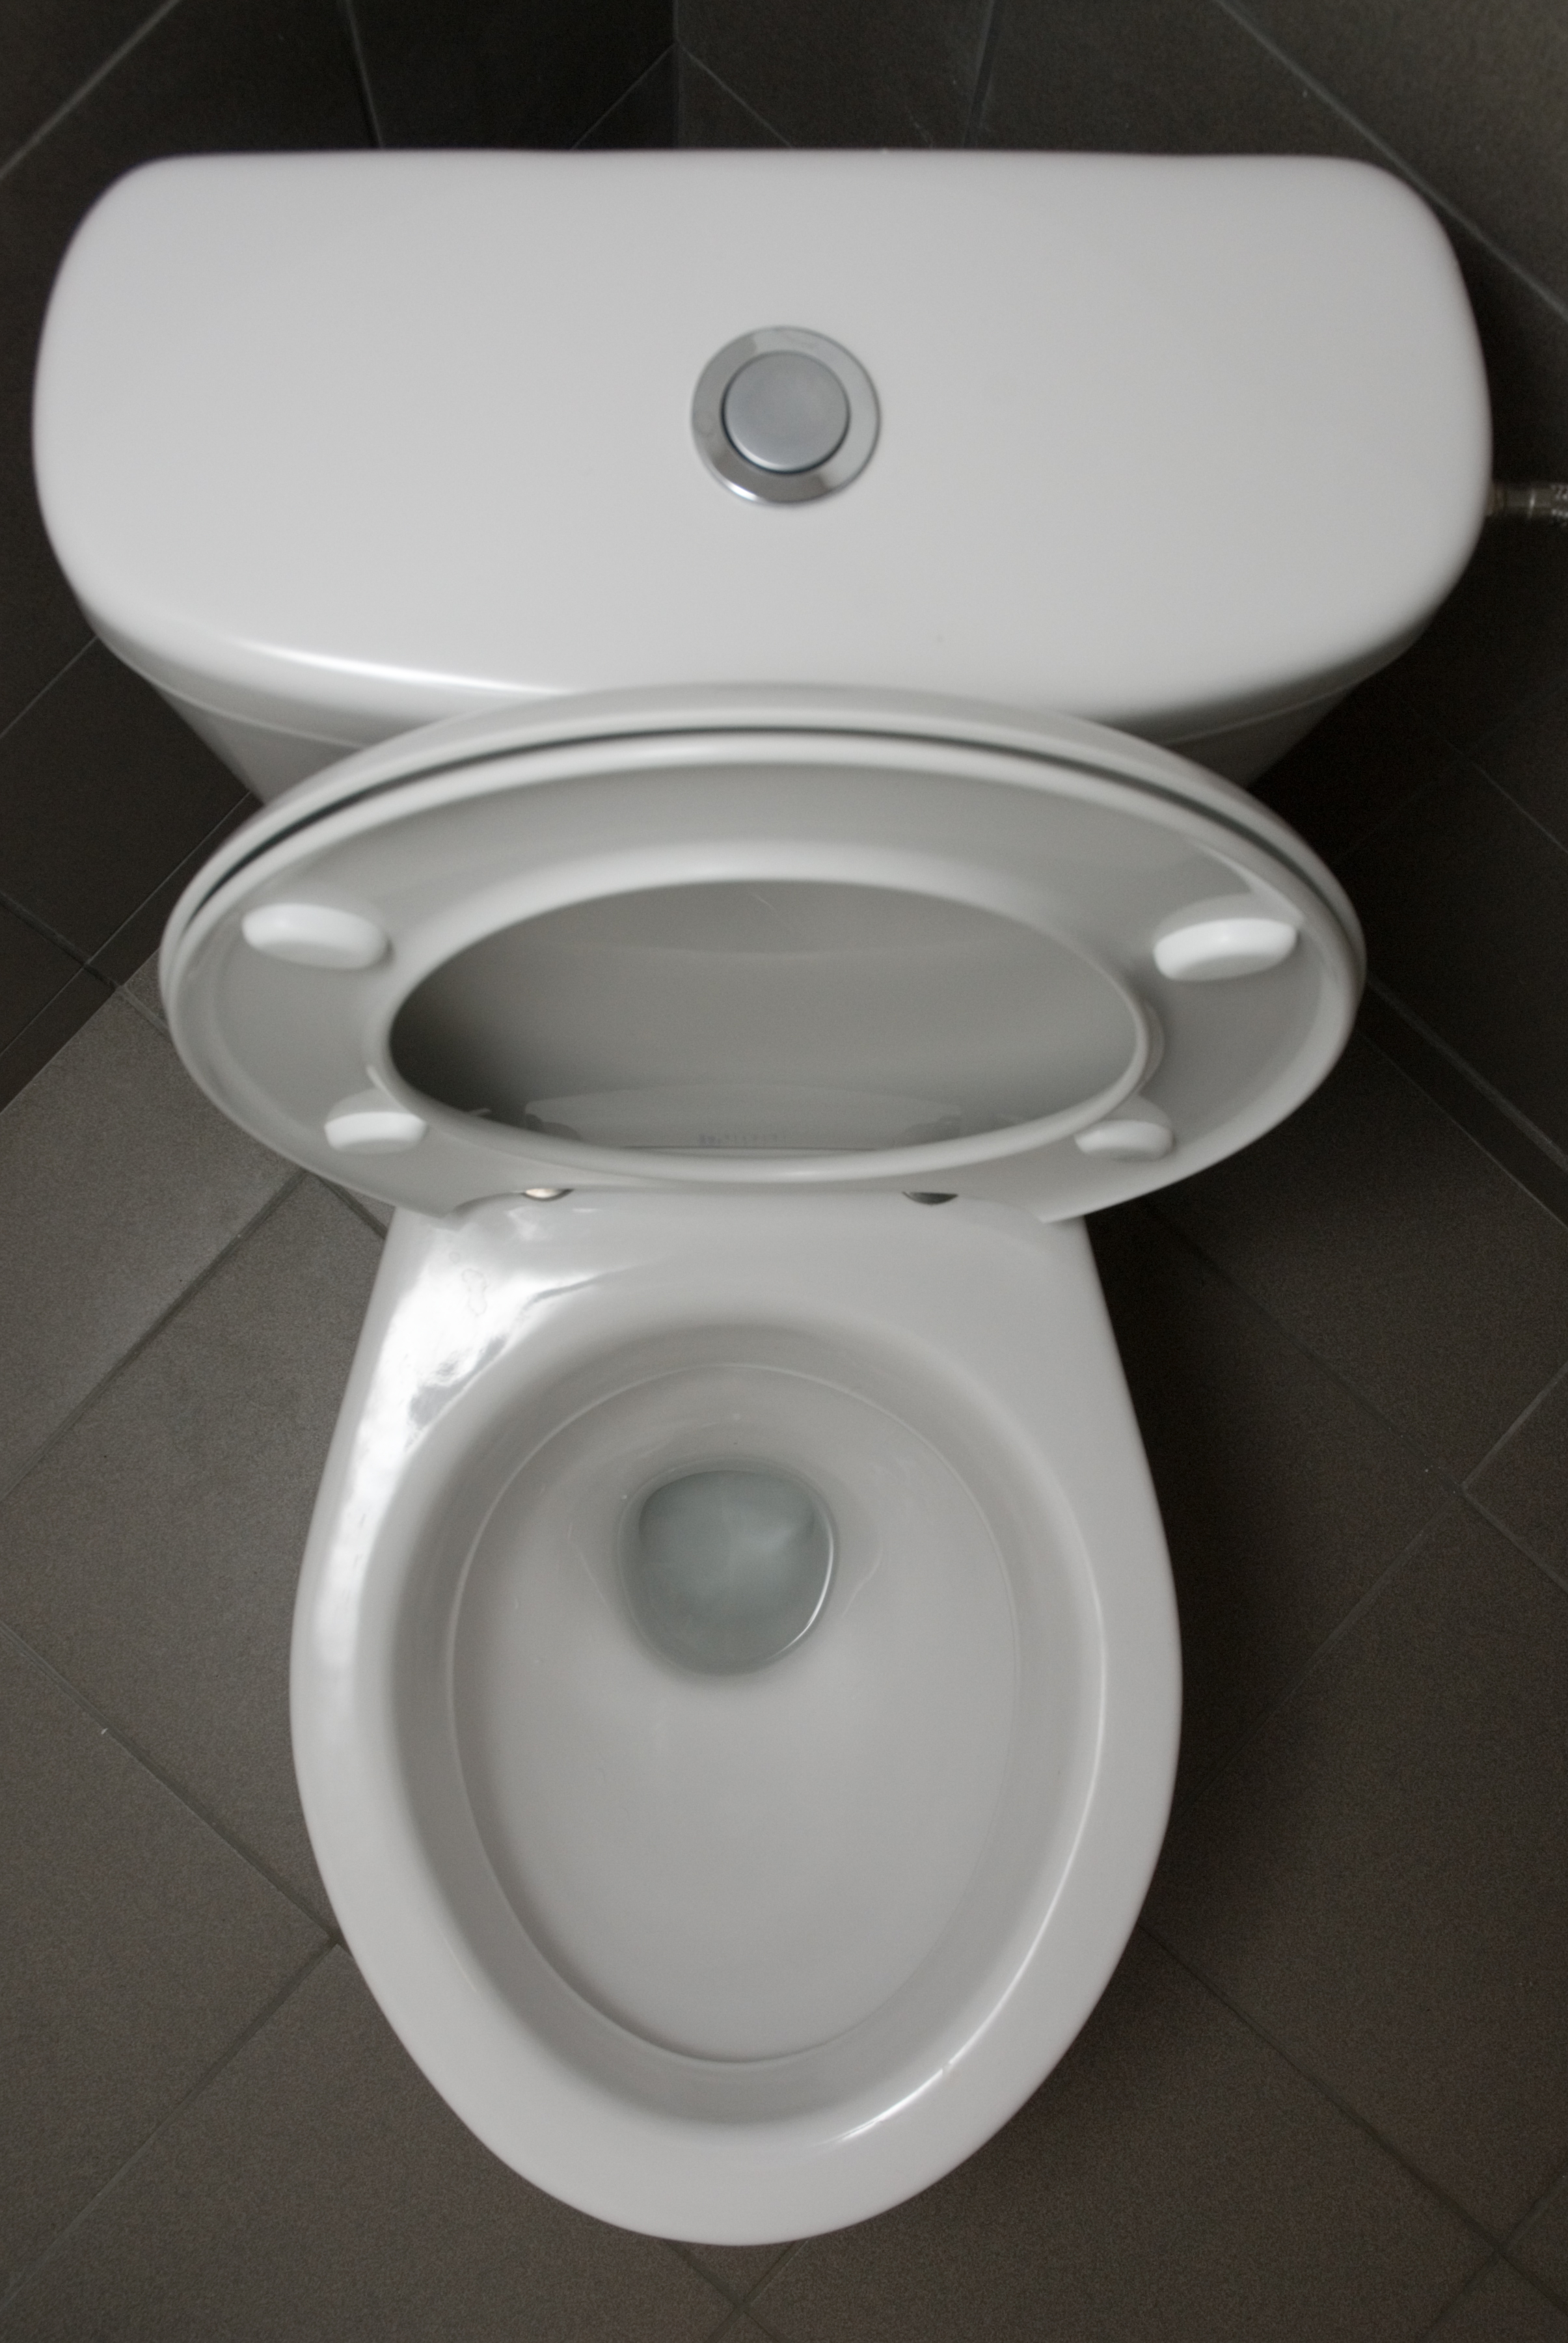 How I Handle The Toilet Seat Being Left Up And Other